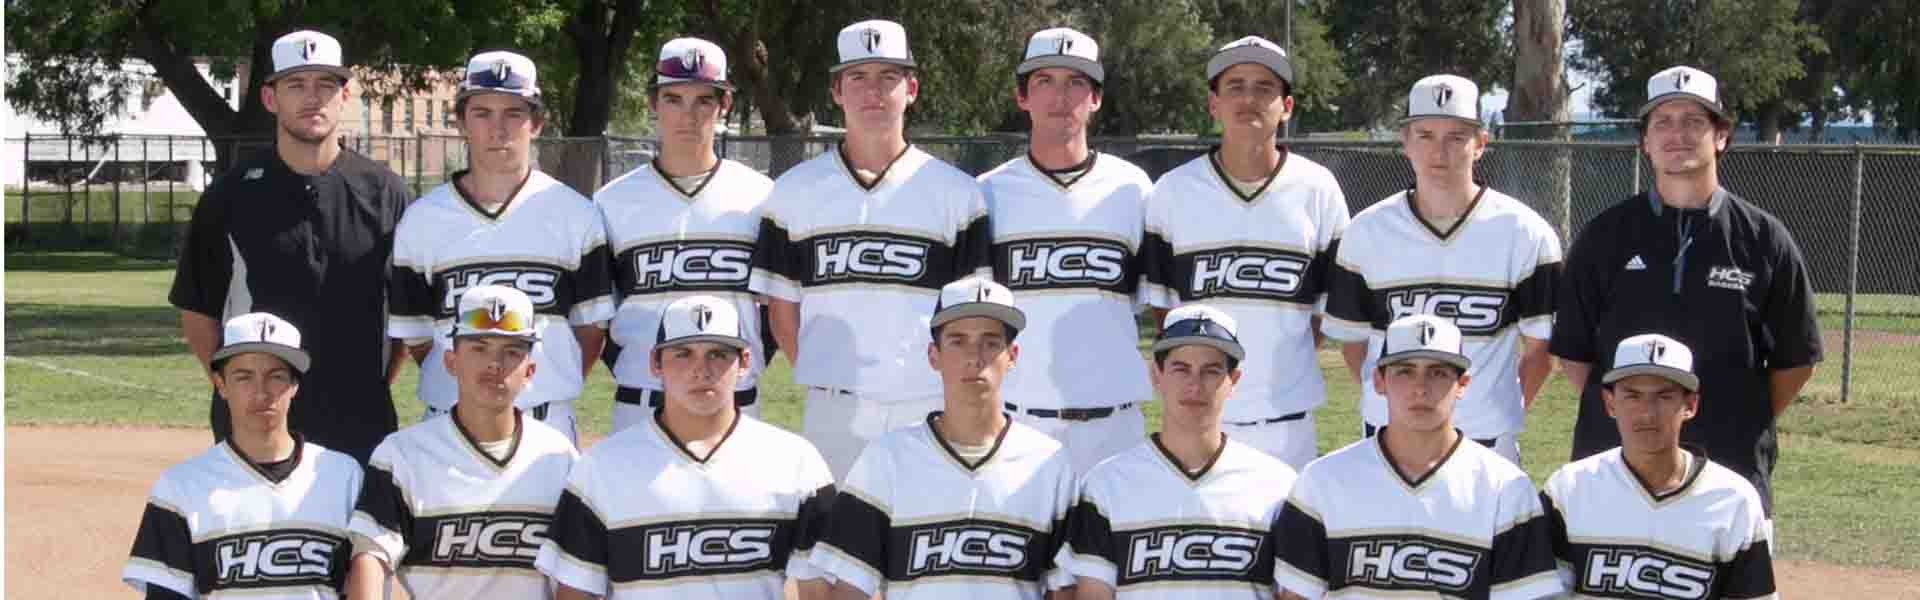 Heritage Christian California USA Baseball Banner 2019